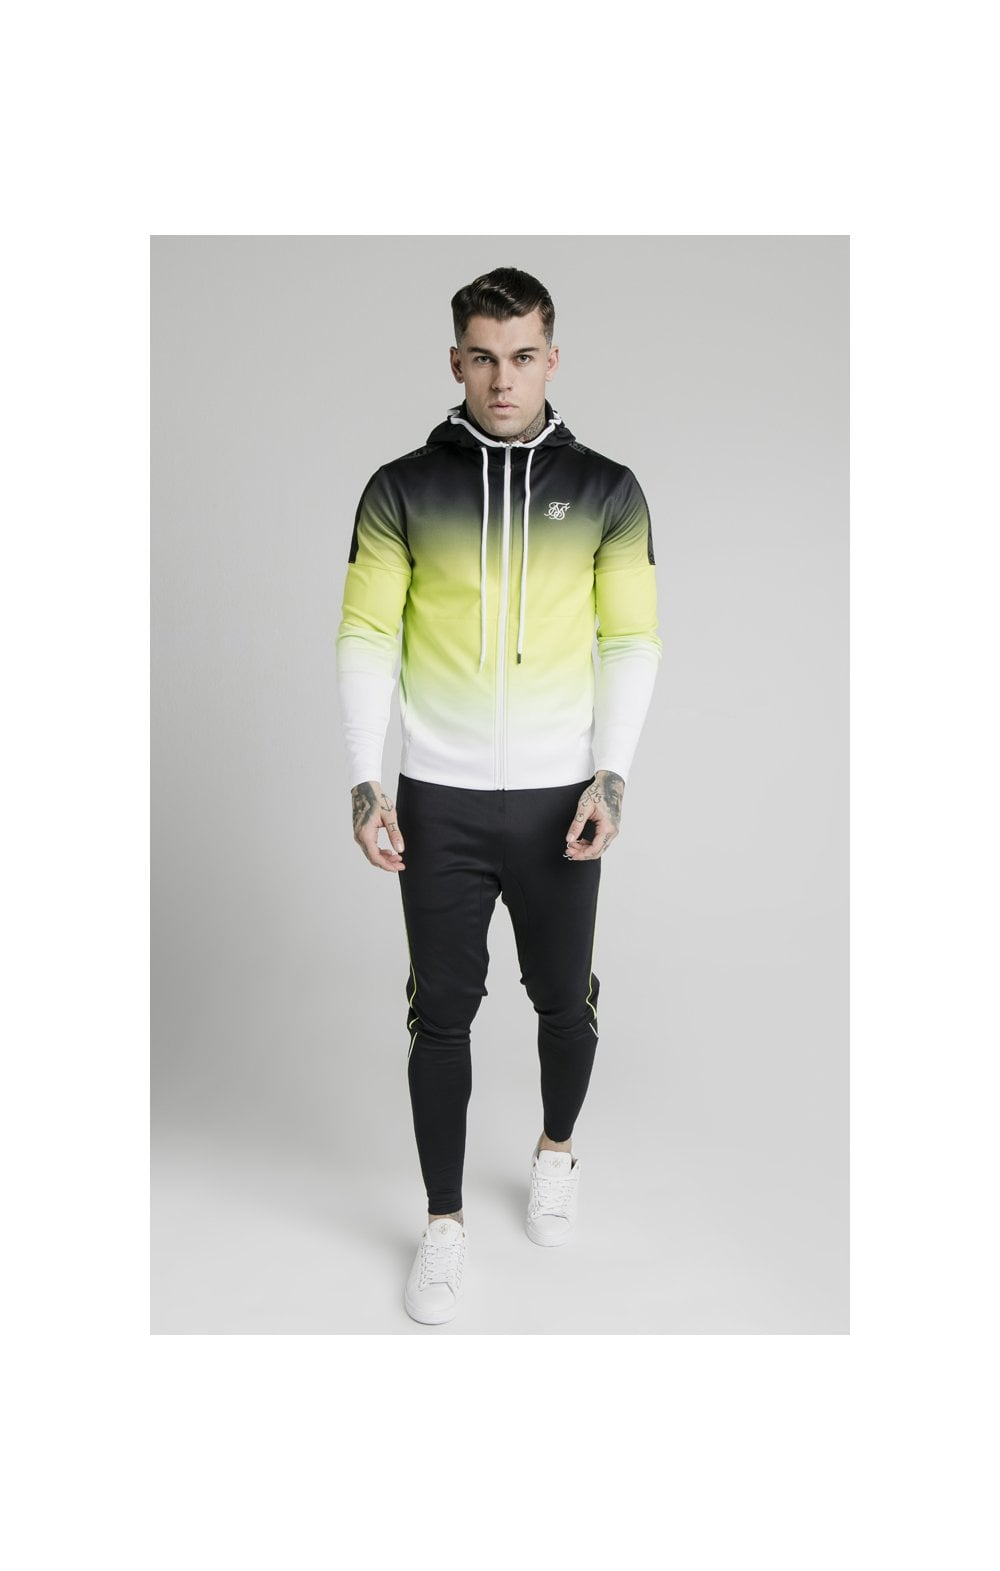 Load image into Gallery viewer, SikSilk Tri-Fade Agility Zip Through Hoodie - Black, Fluro & White (3)